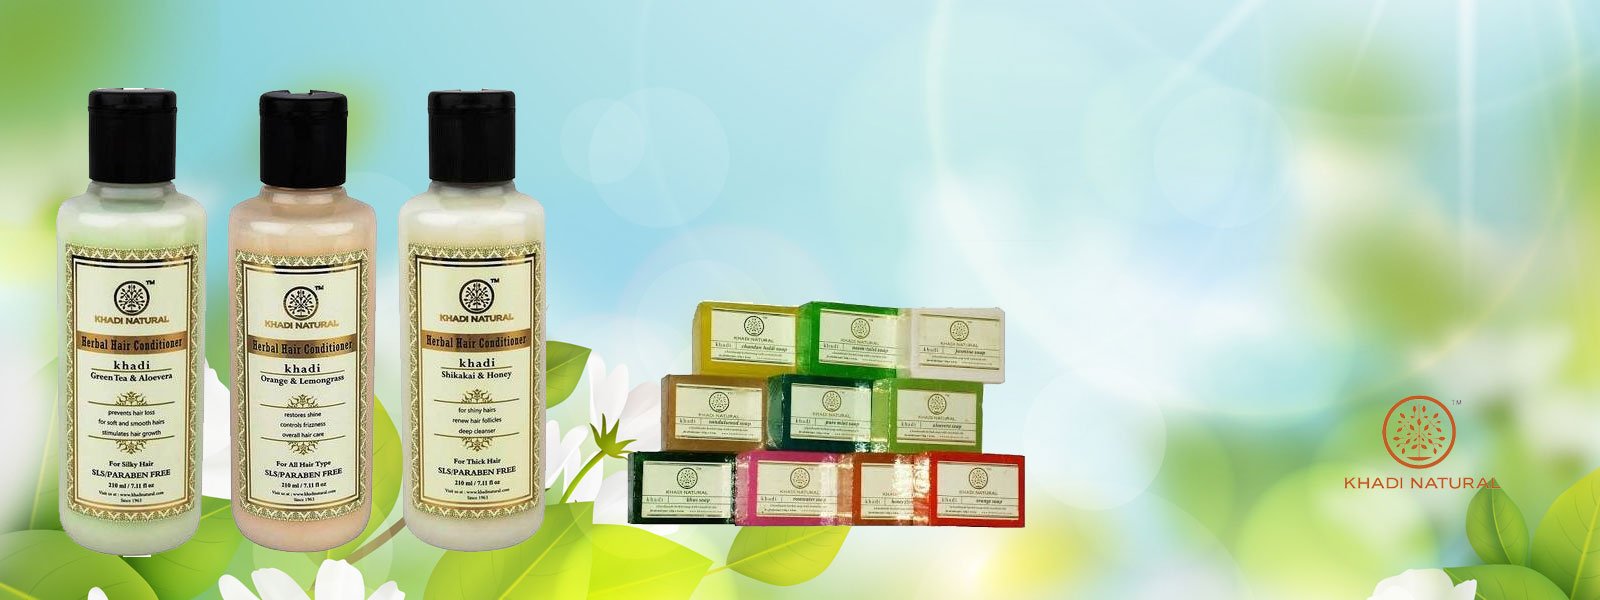 khadi natural products buy in Dubai